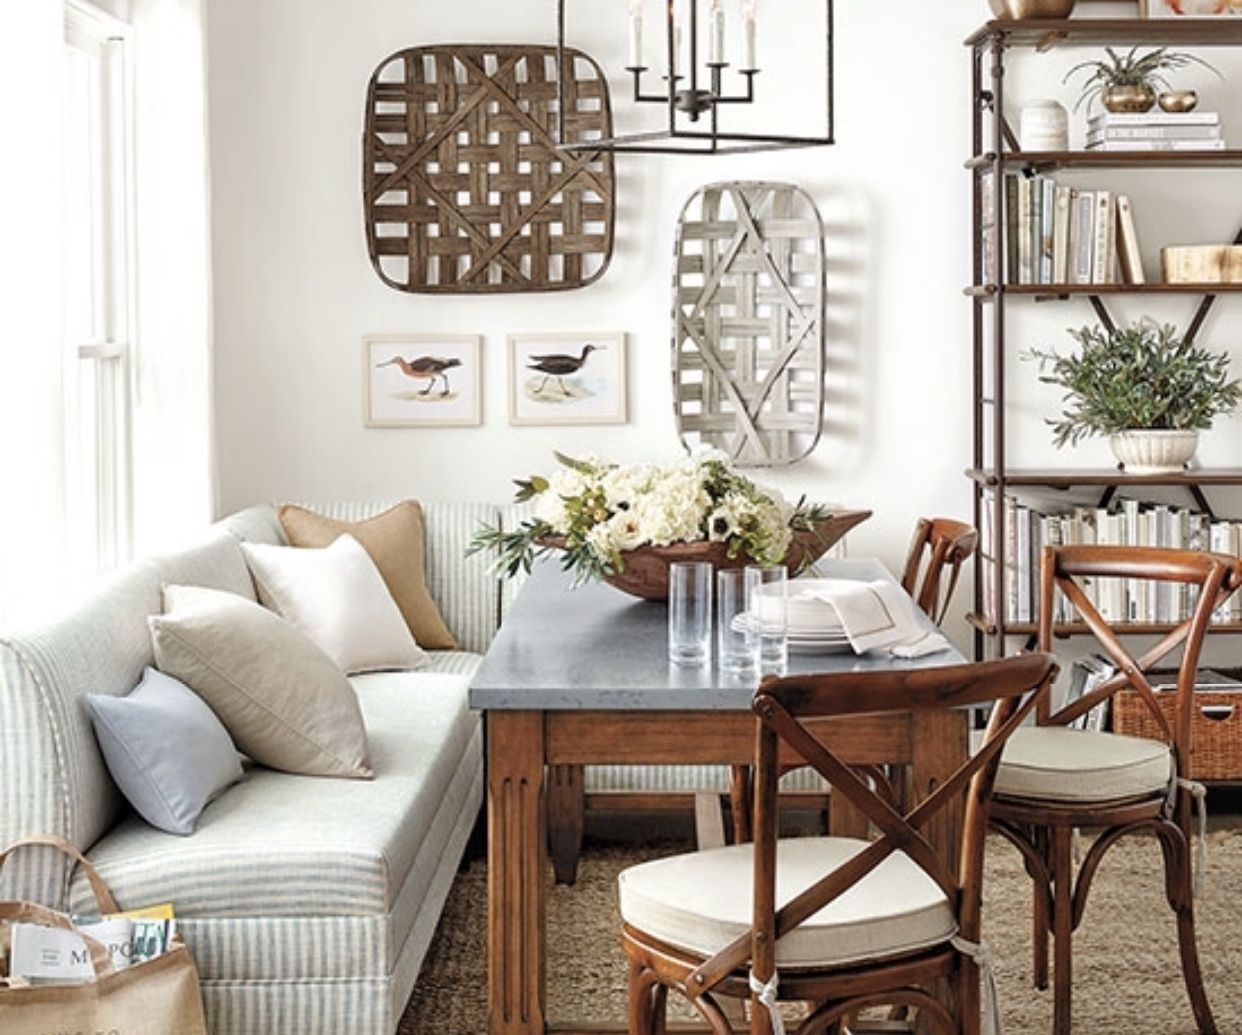 Gallery Wall With Tobacco Baskets And Prints Decor Wall Decor